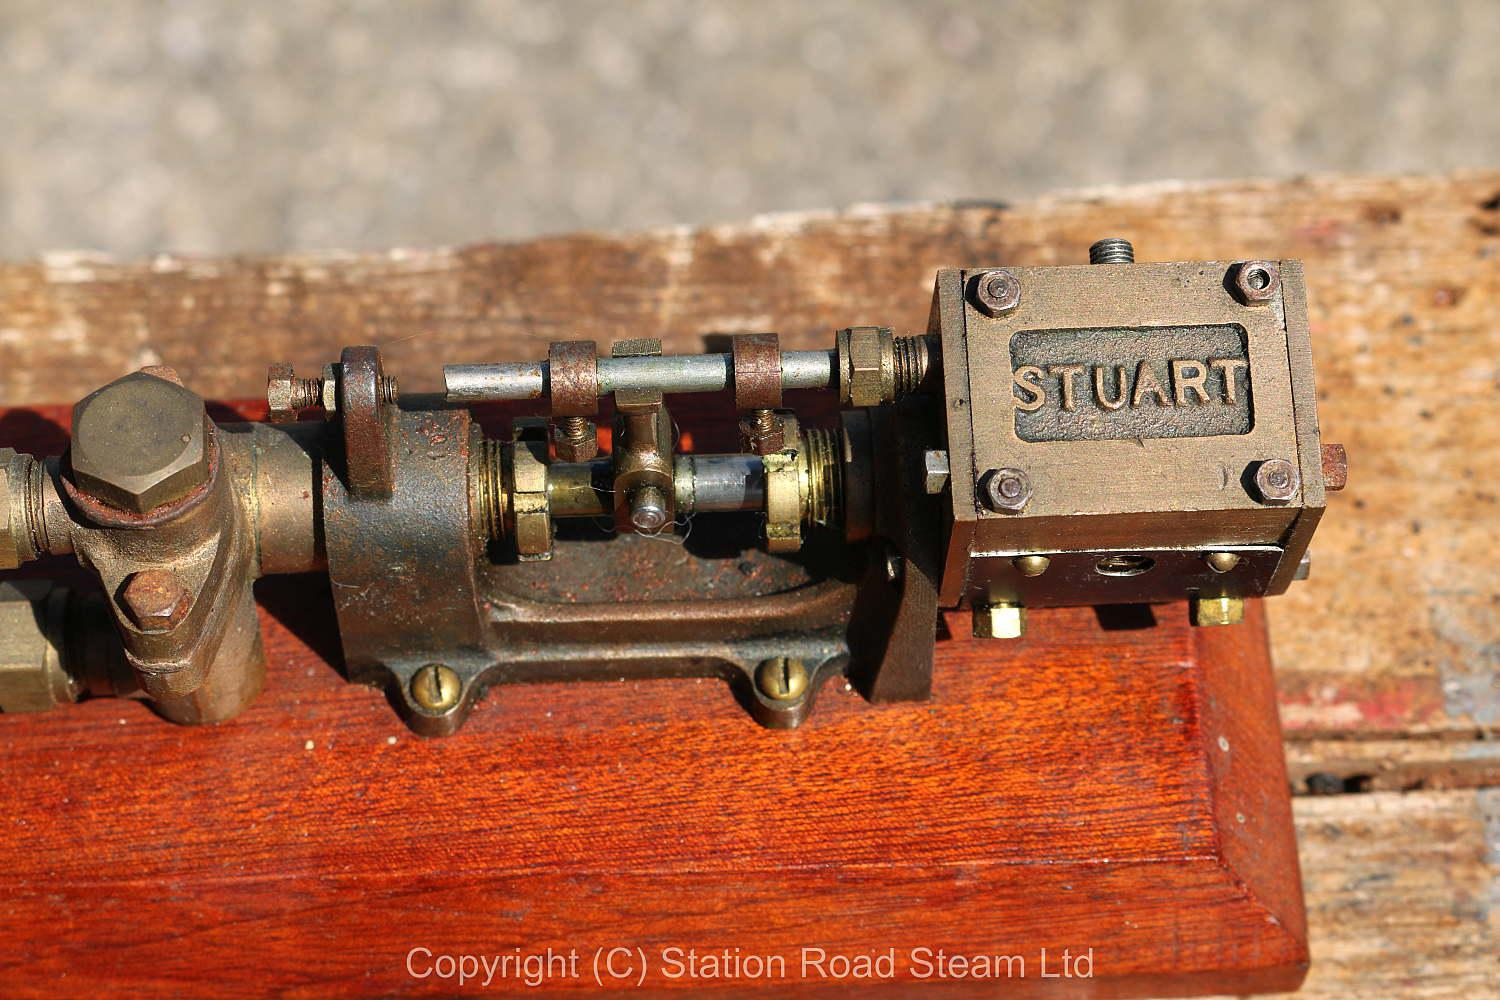 Stuart steam pump with water tank